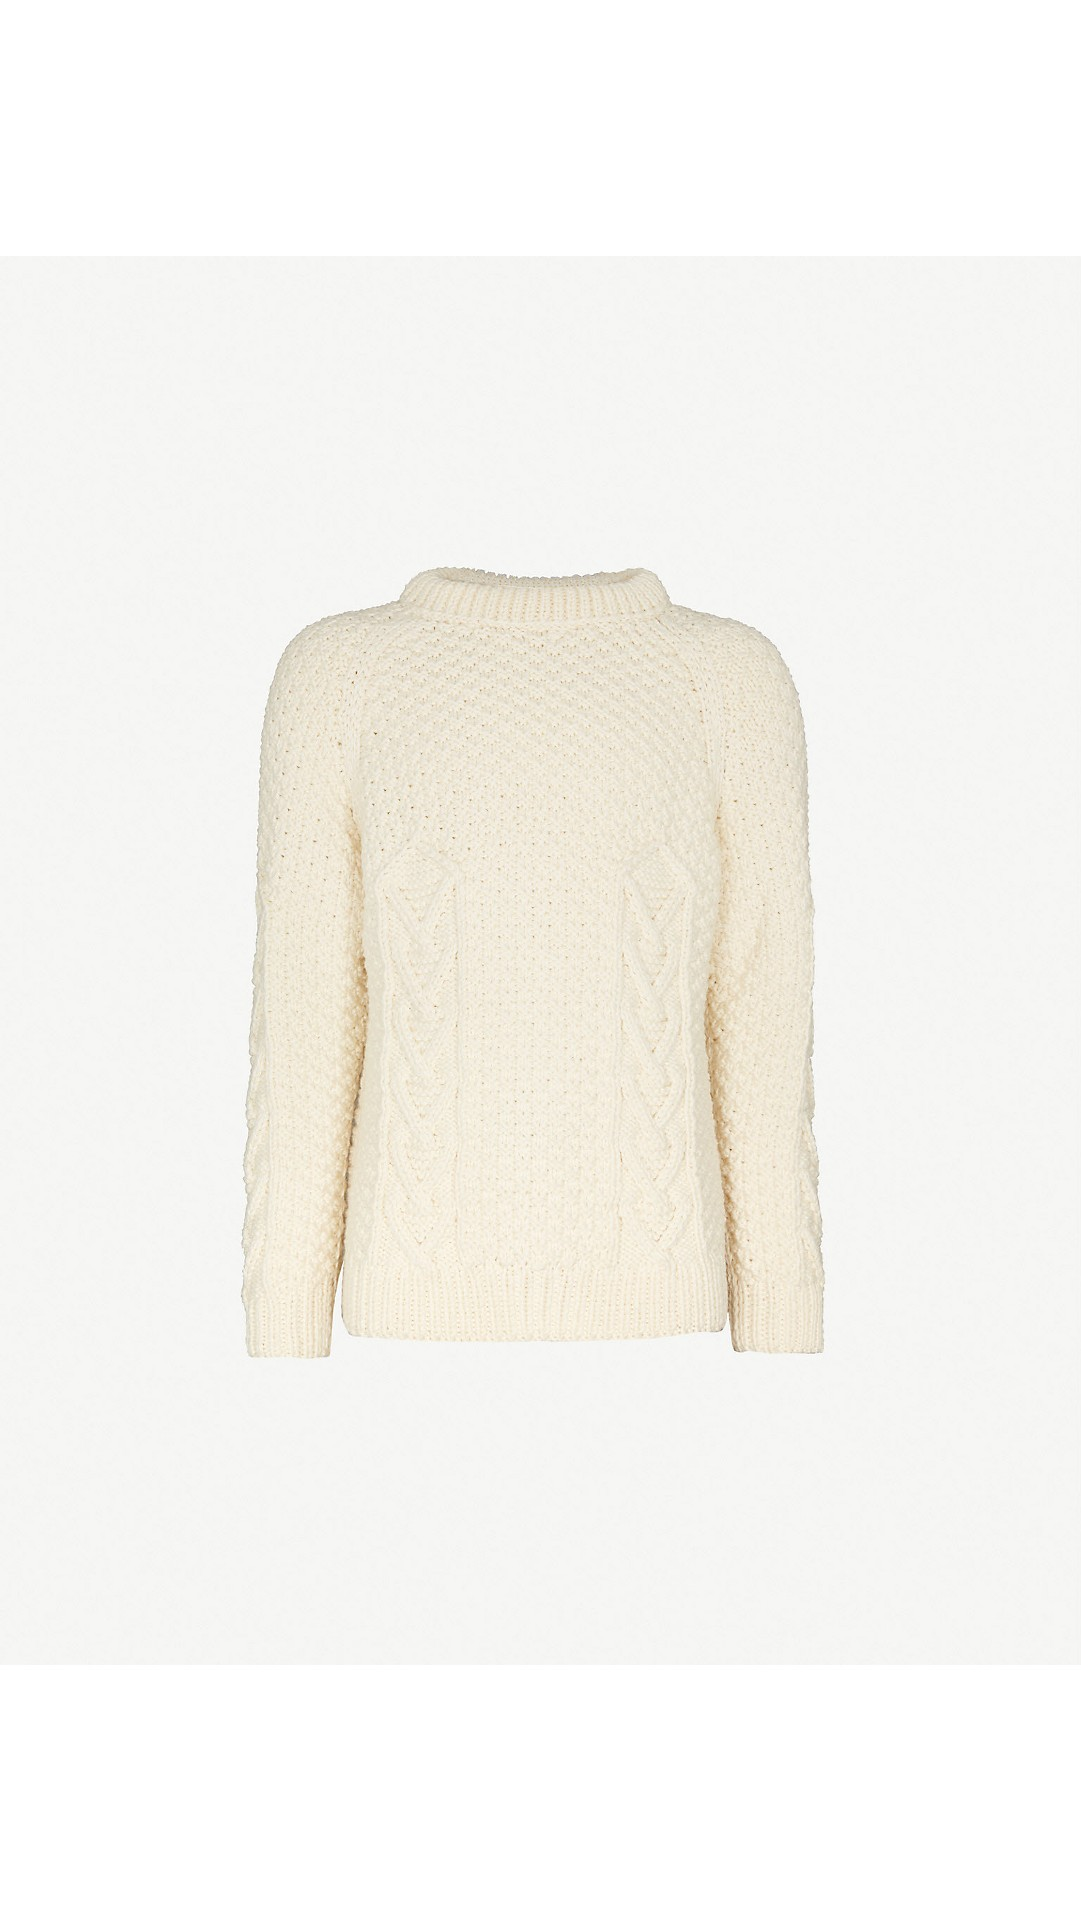 5579e34f88 LOEWE - Logo-embroidered cable-knit wool jumper